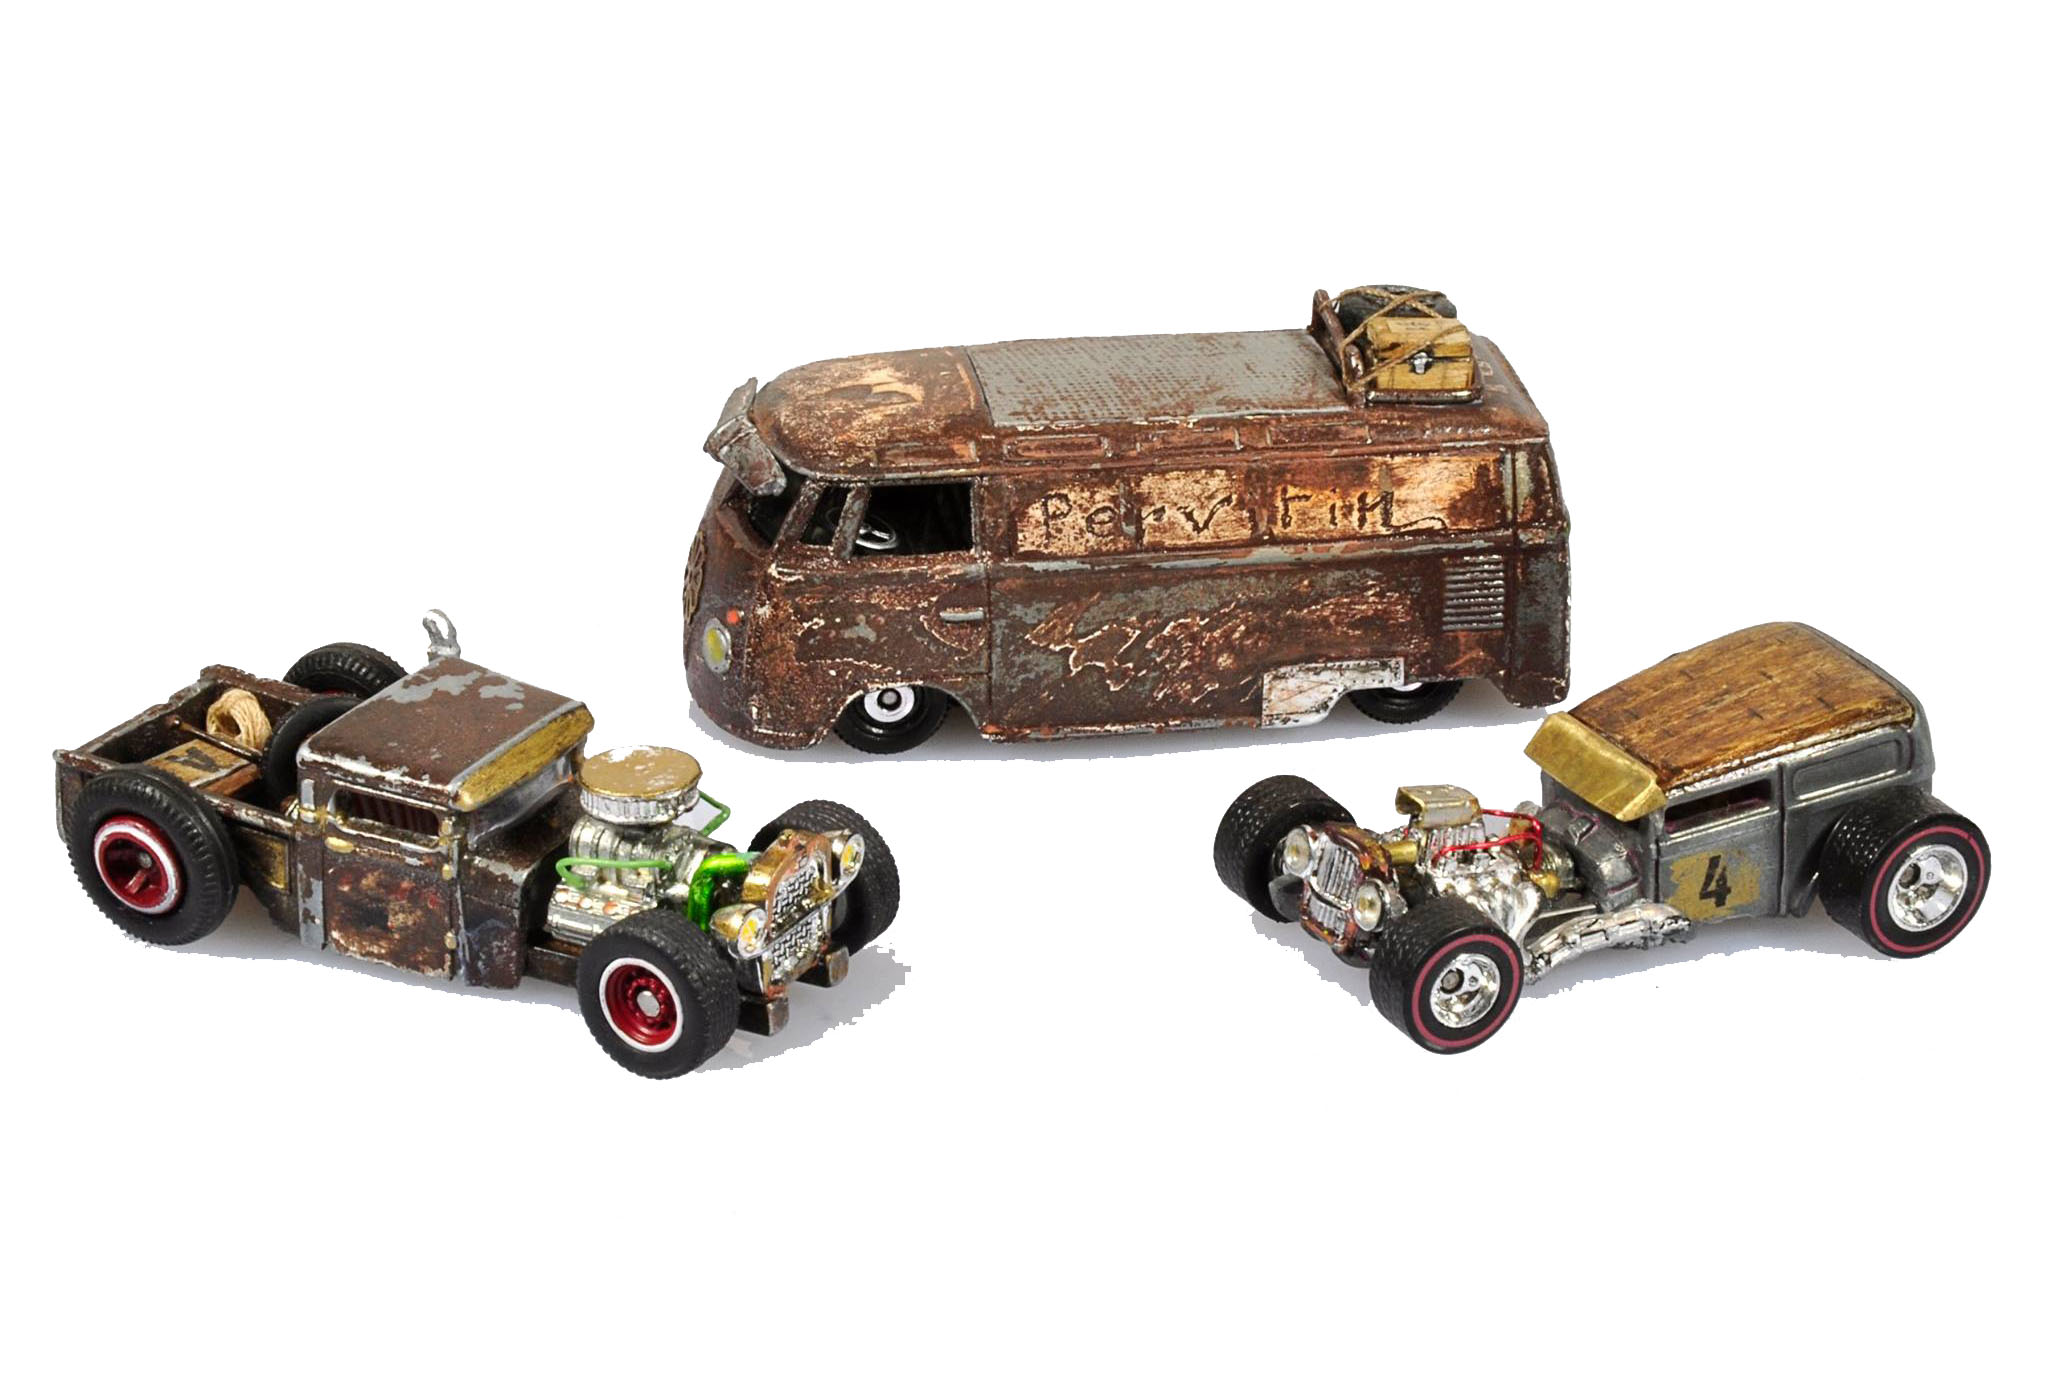 The Best Custom Hot Wheels from Instagram and Facebook